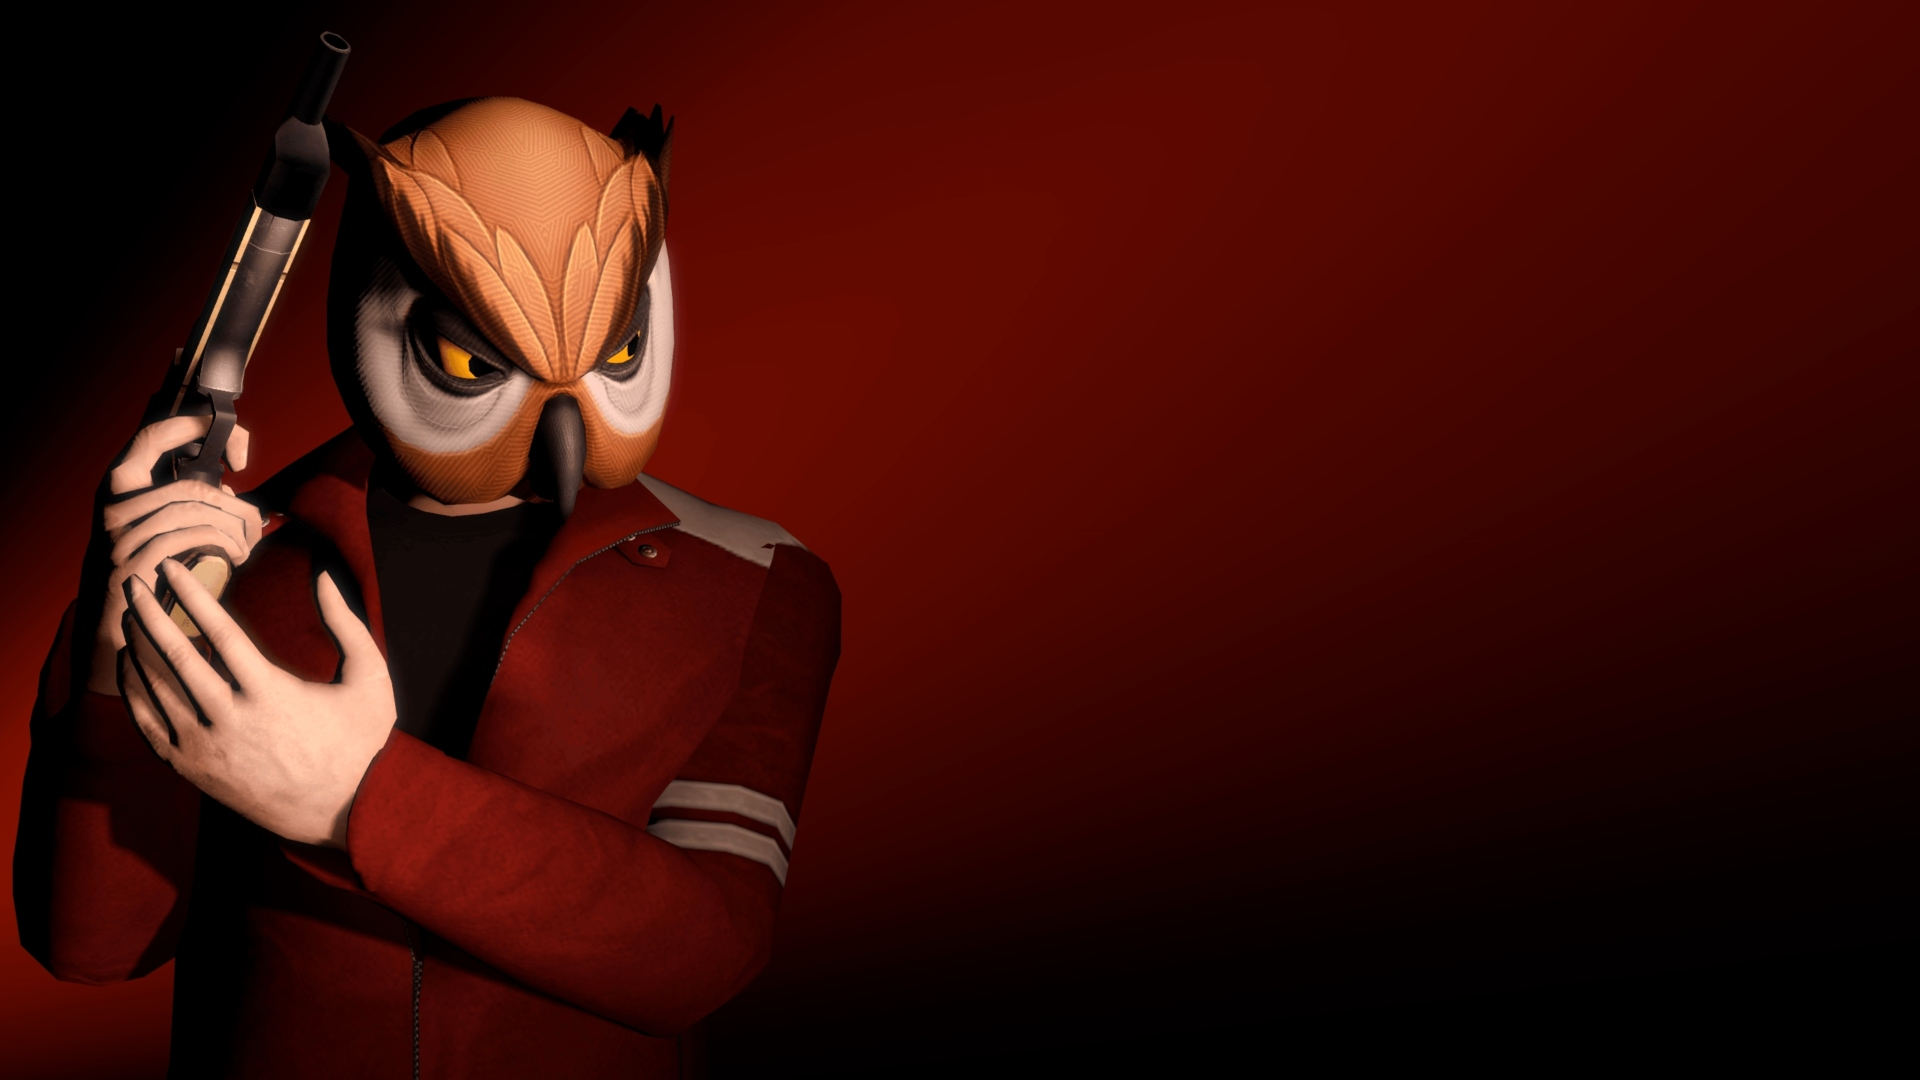 VanossGaming Backgrounds